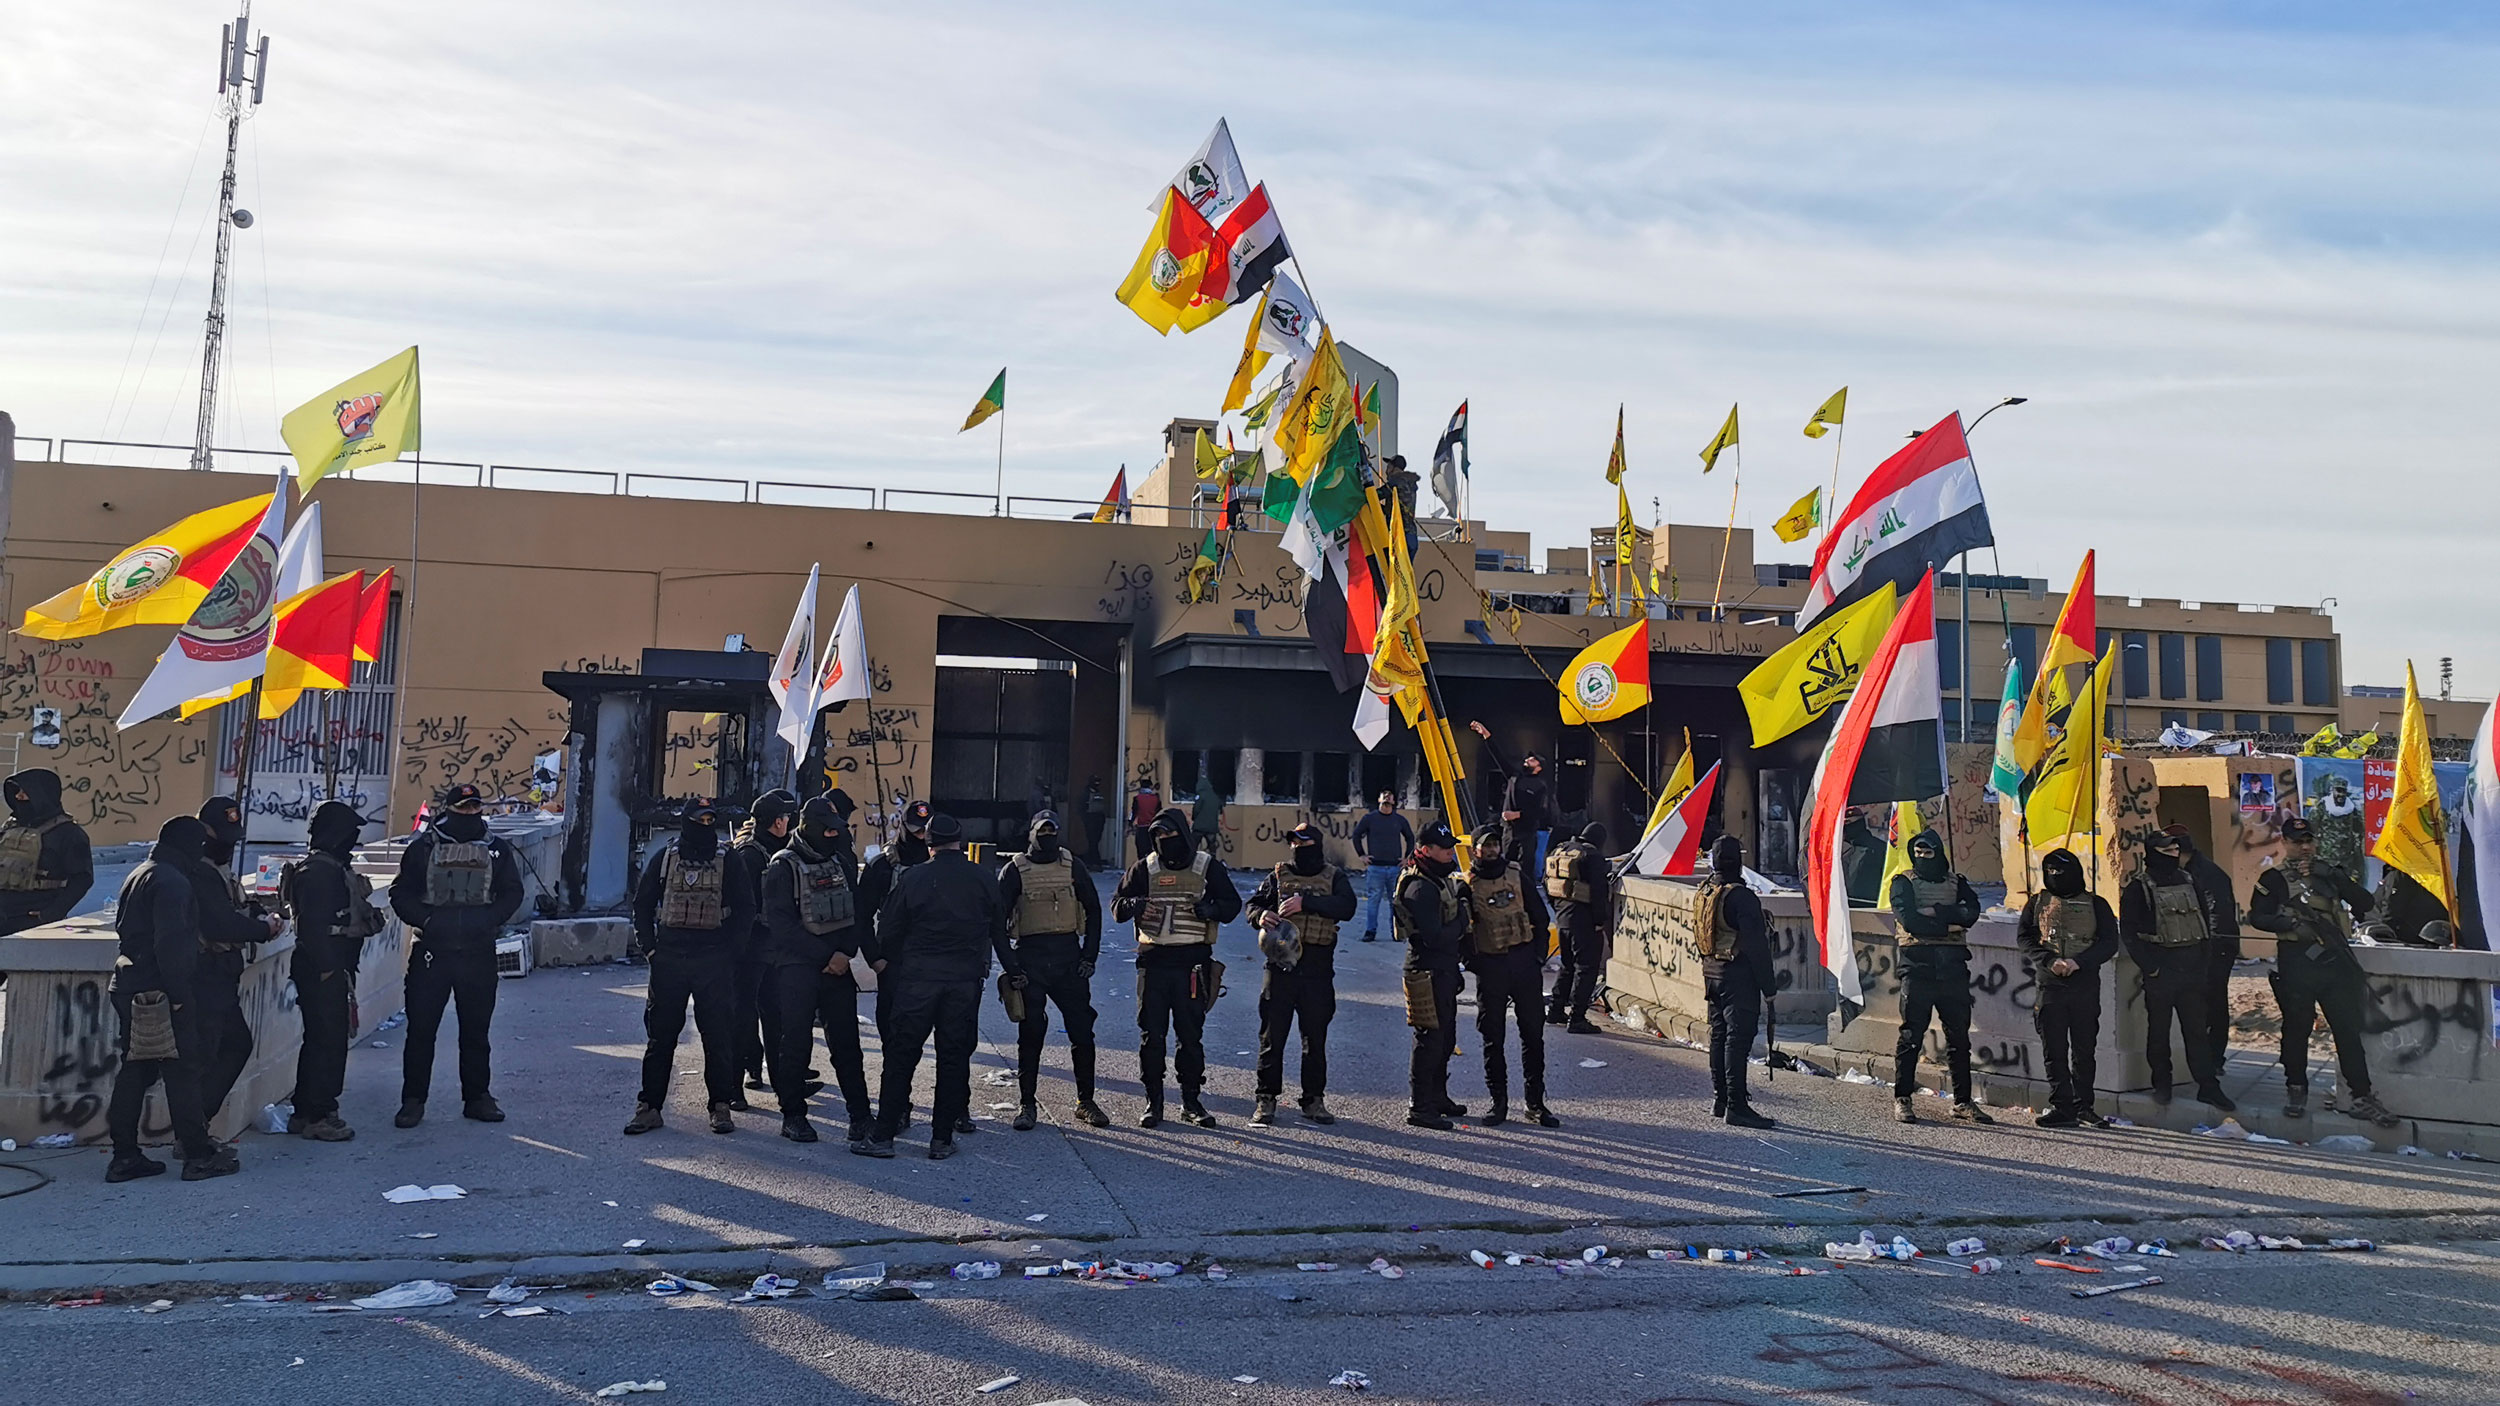 A line of security forces wearing helmets and carrying weapons are shown standing outside of the US Embassy in Baghdad.